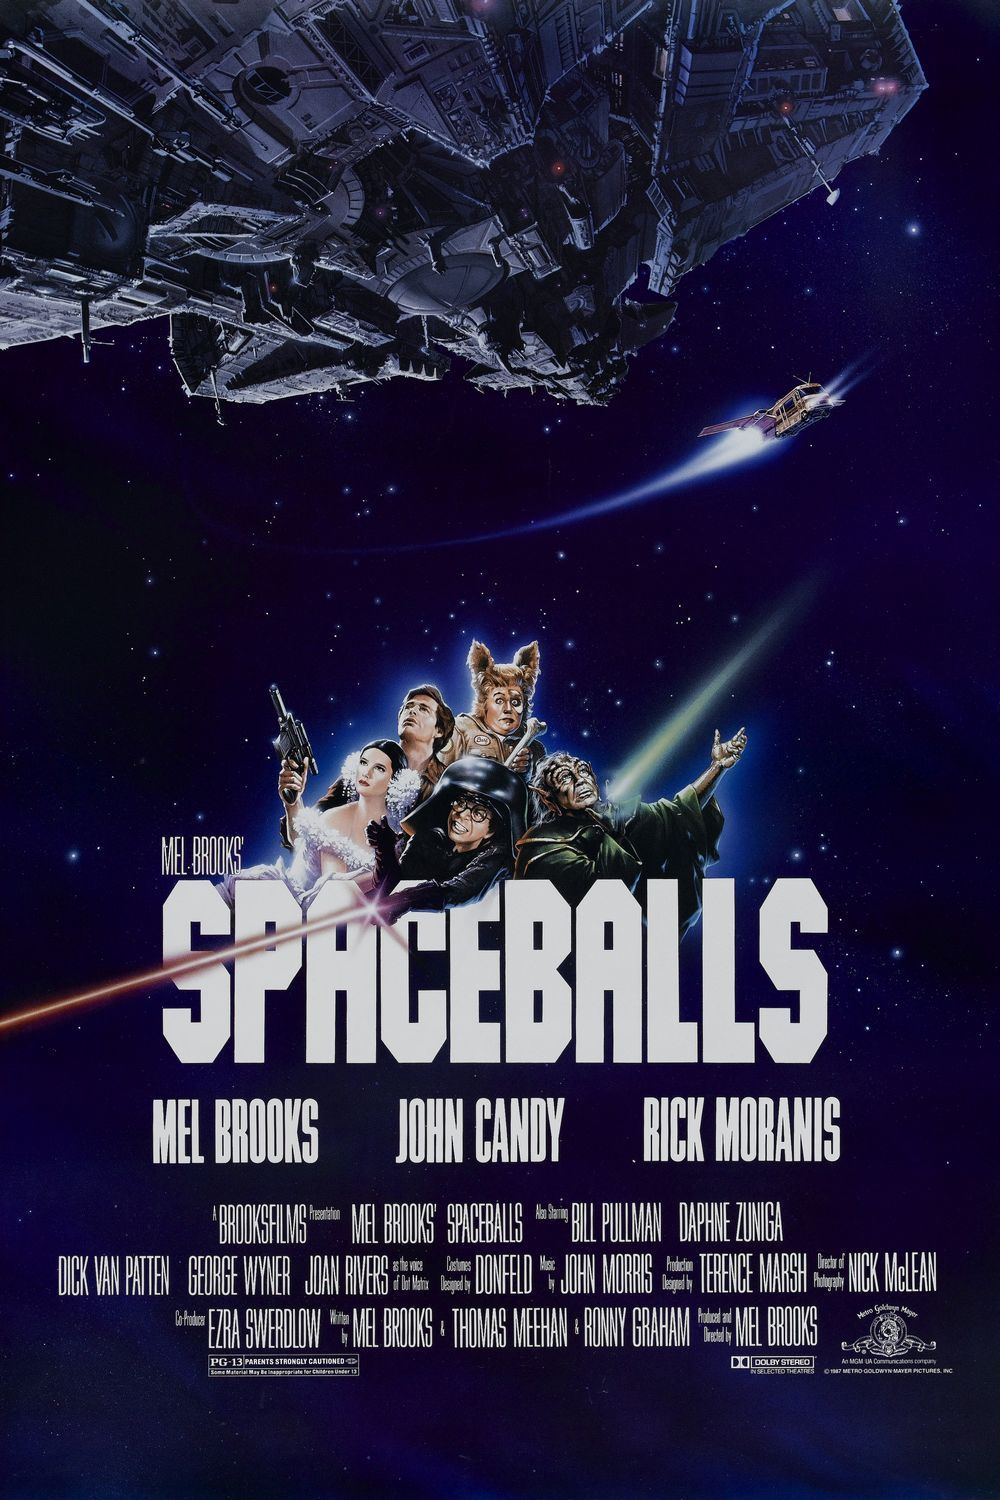 upnorthtrips:  25 YEARS AGO TODAY |6/24/87| The movie, Spaceballs, is released in theaters.